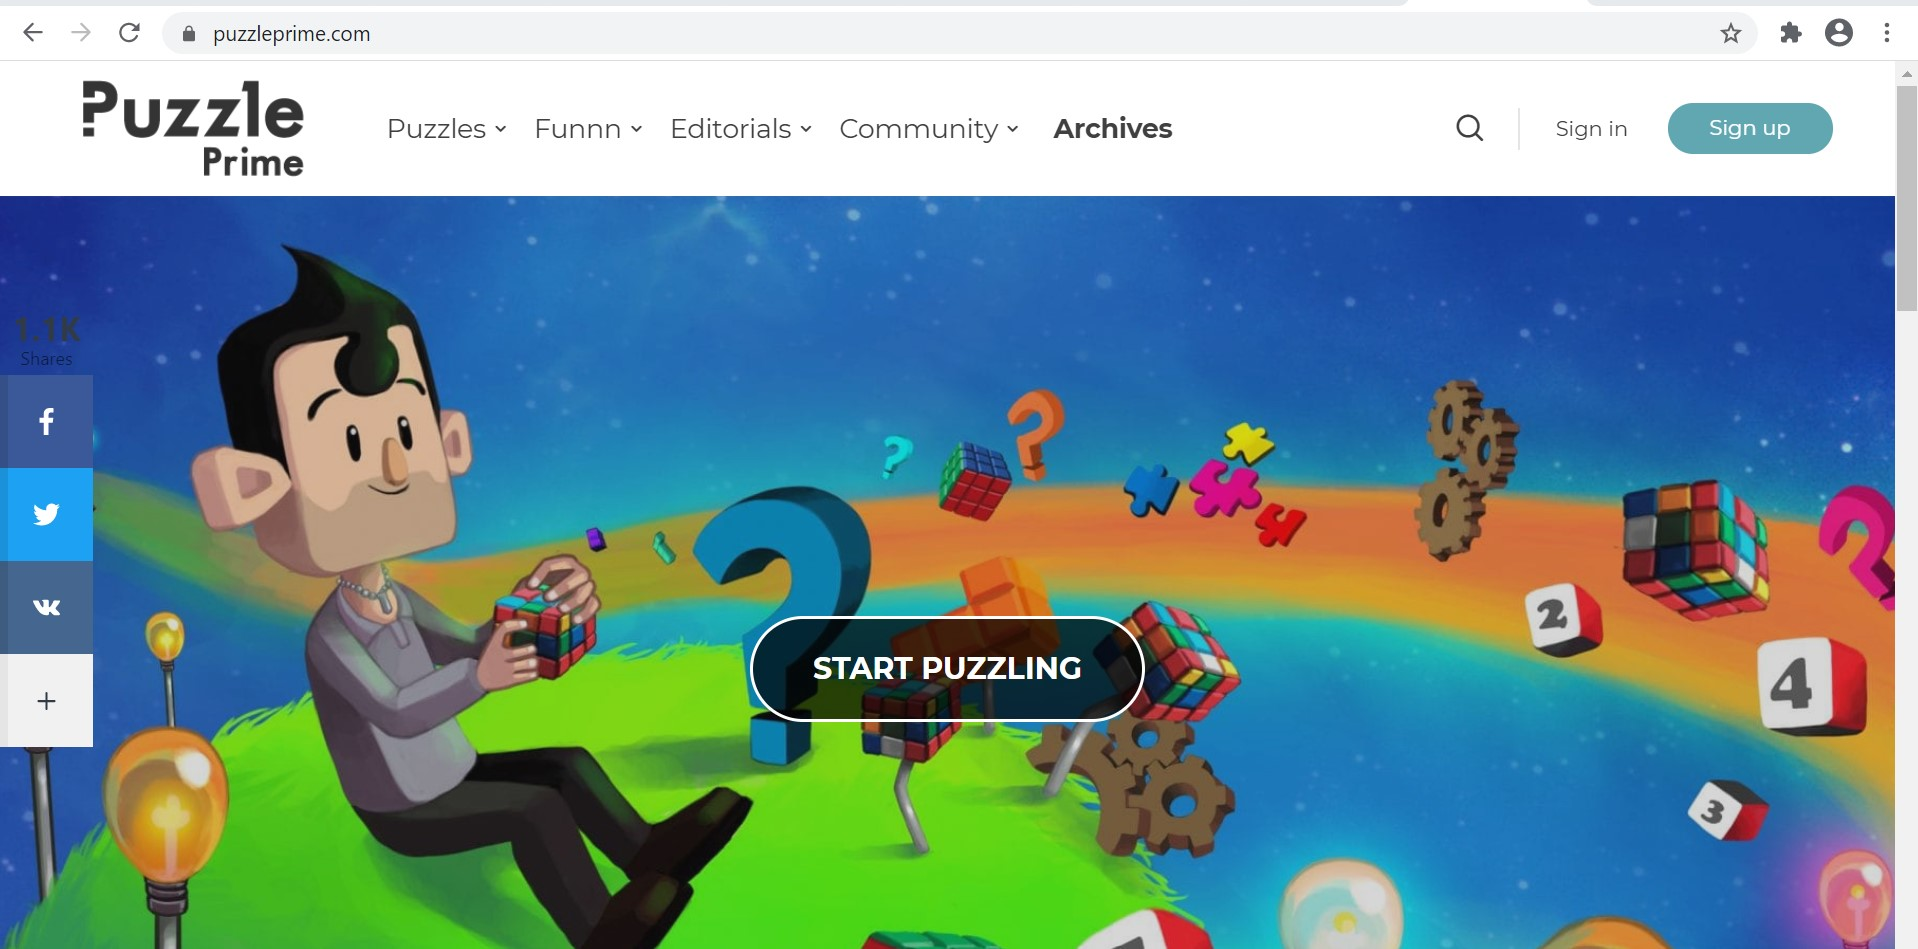 Image and link to Puzzle Prime Home page